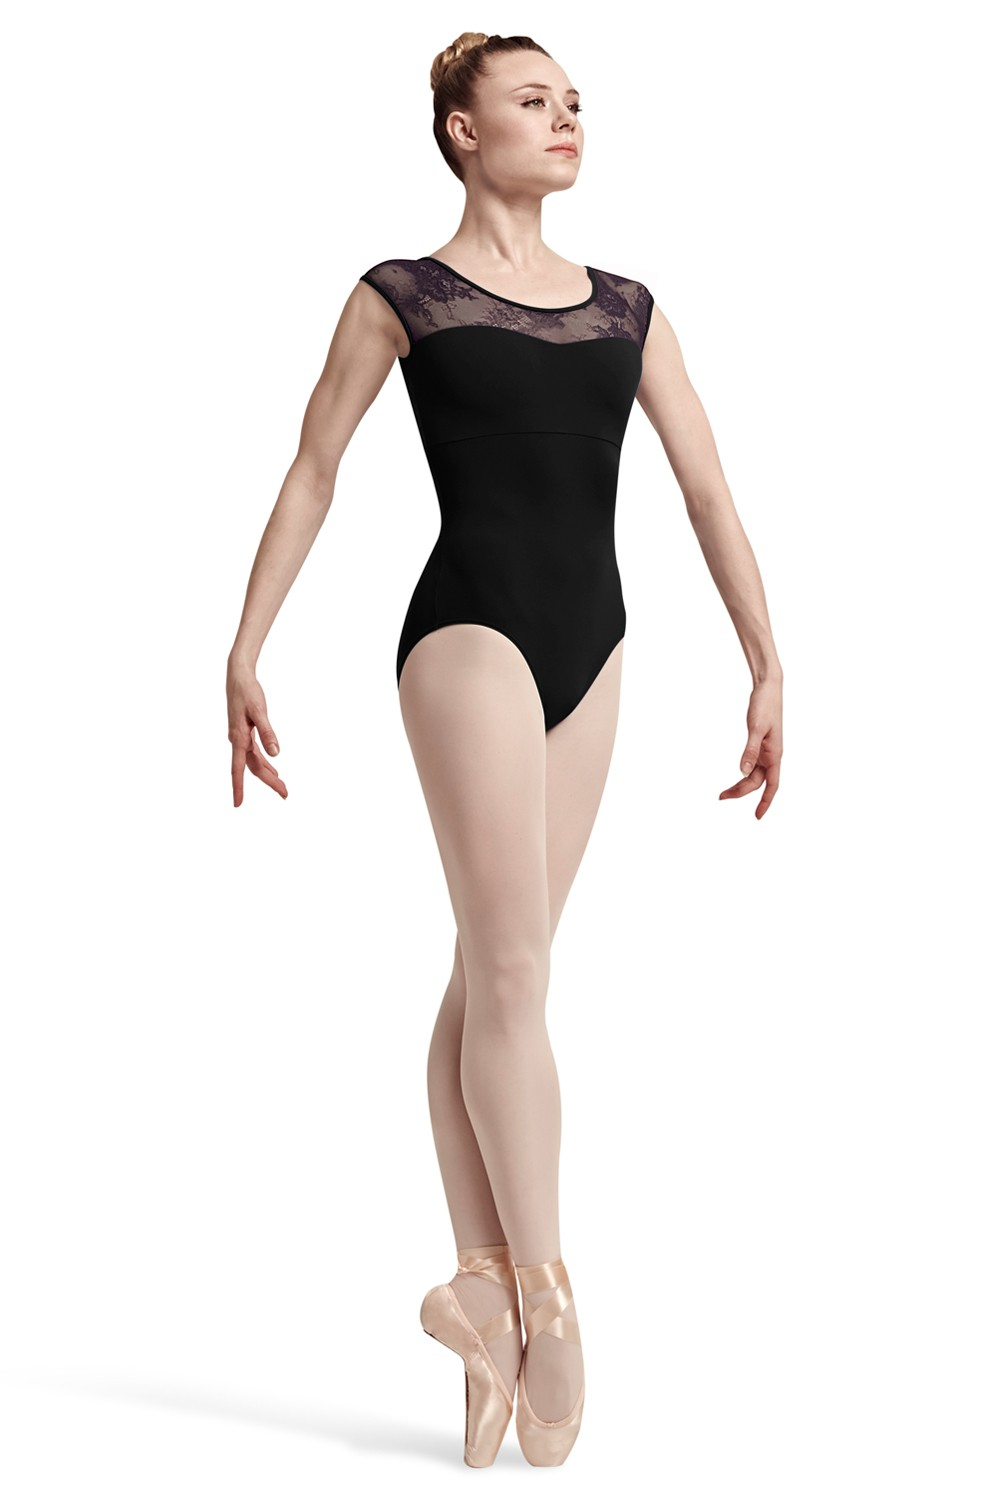 Hava Women's Dance Leotards